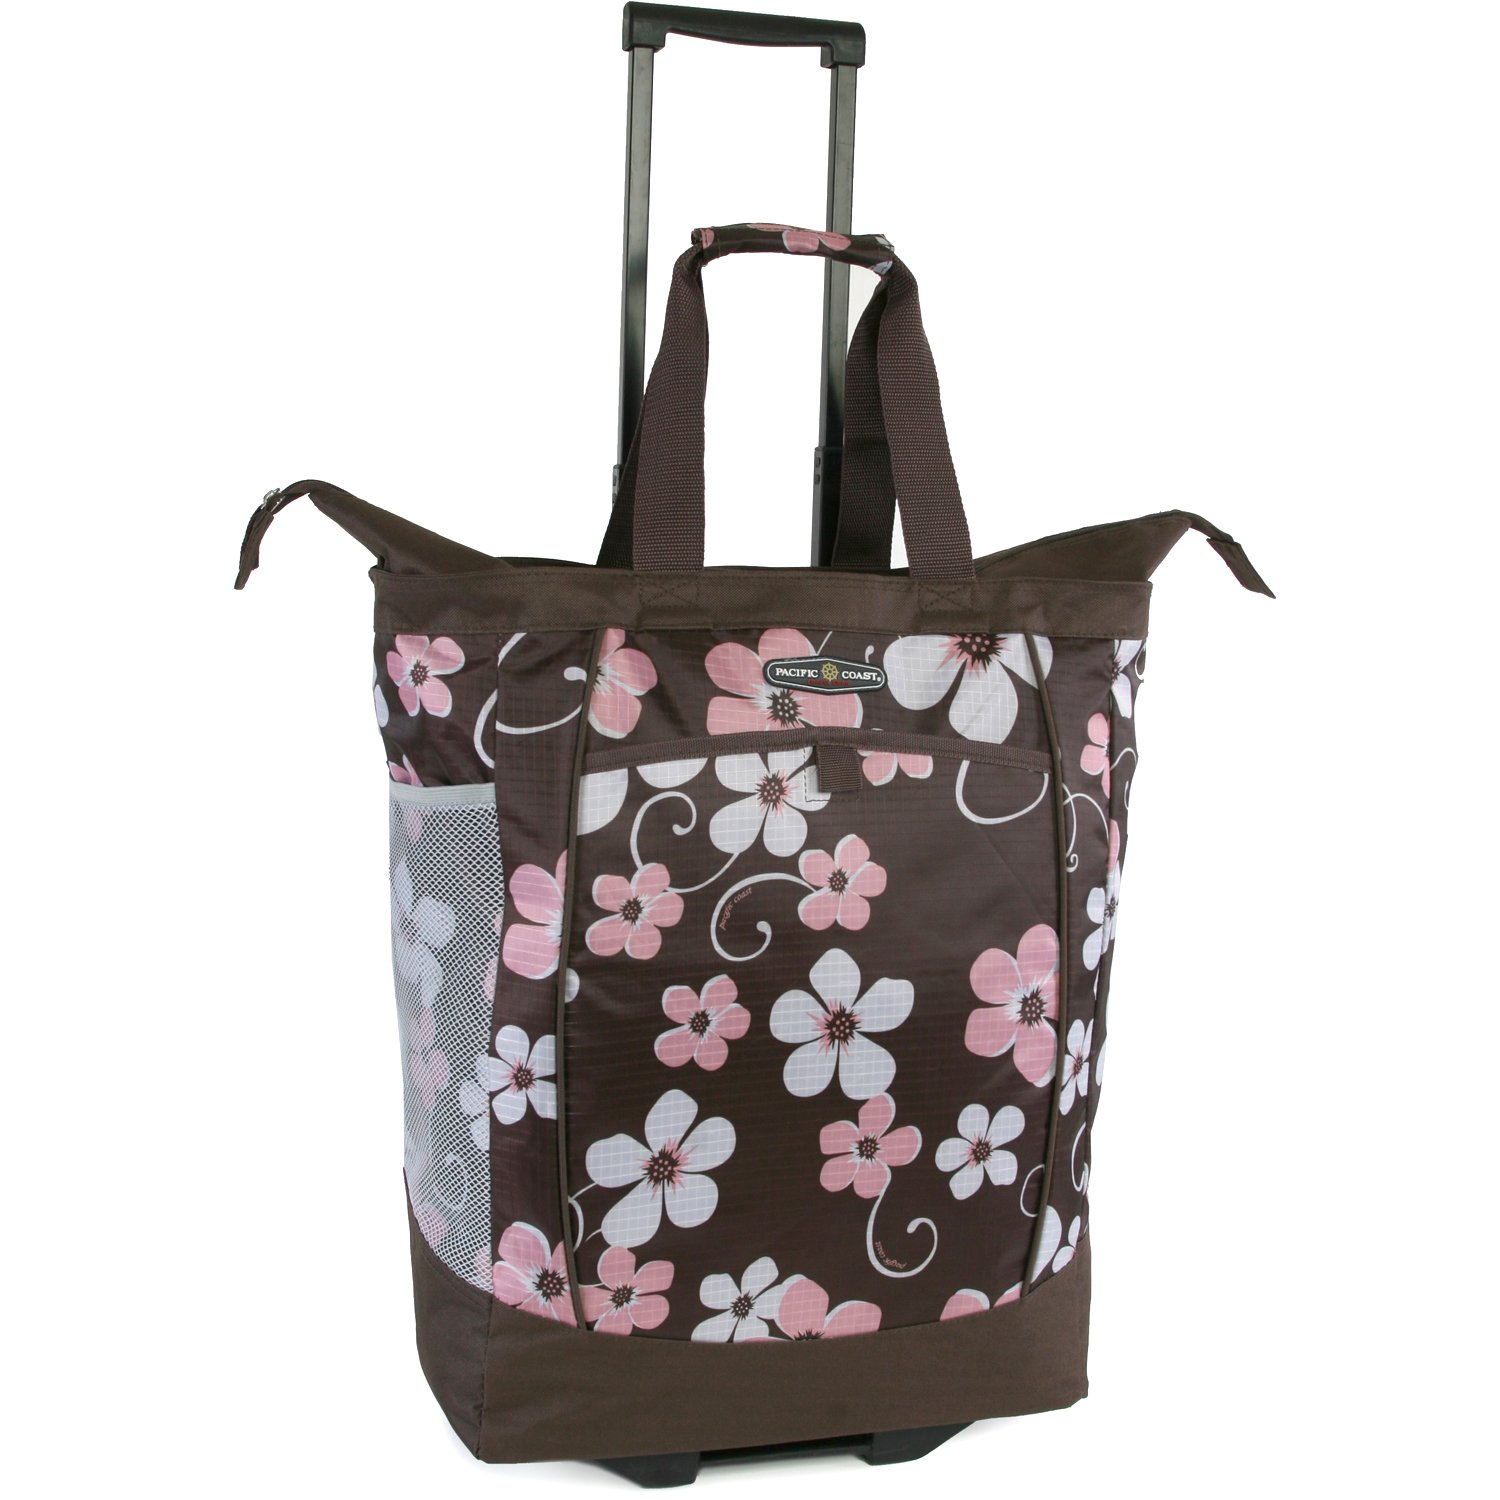 Pacific Coast Signature Large Rolling Shopper Tote Bag, Hawaiian Pink by Pacific Coast Signature